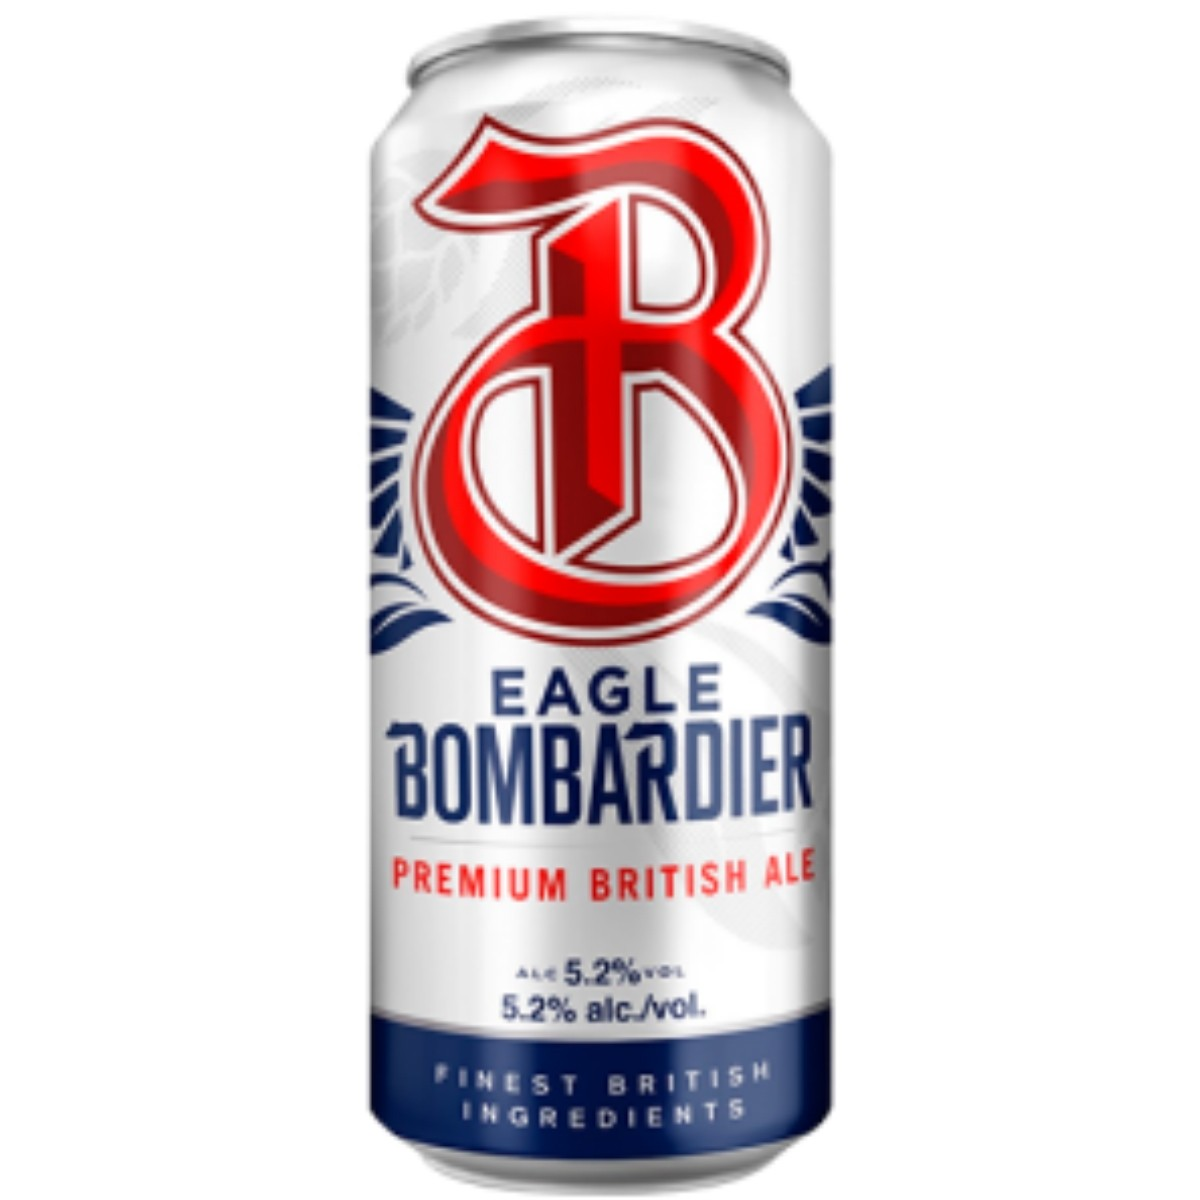 Bombardier Eagle Lata 500ml Premium British Ale